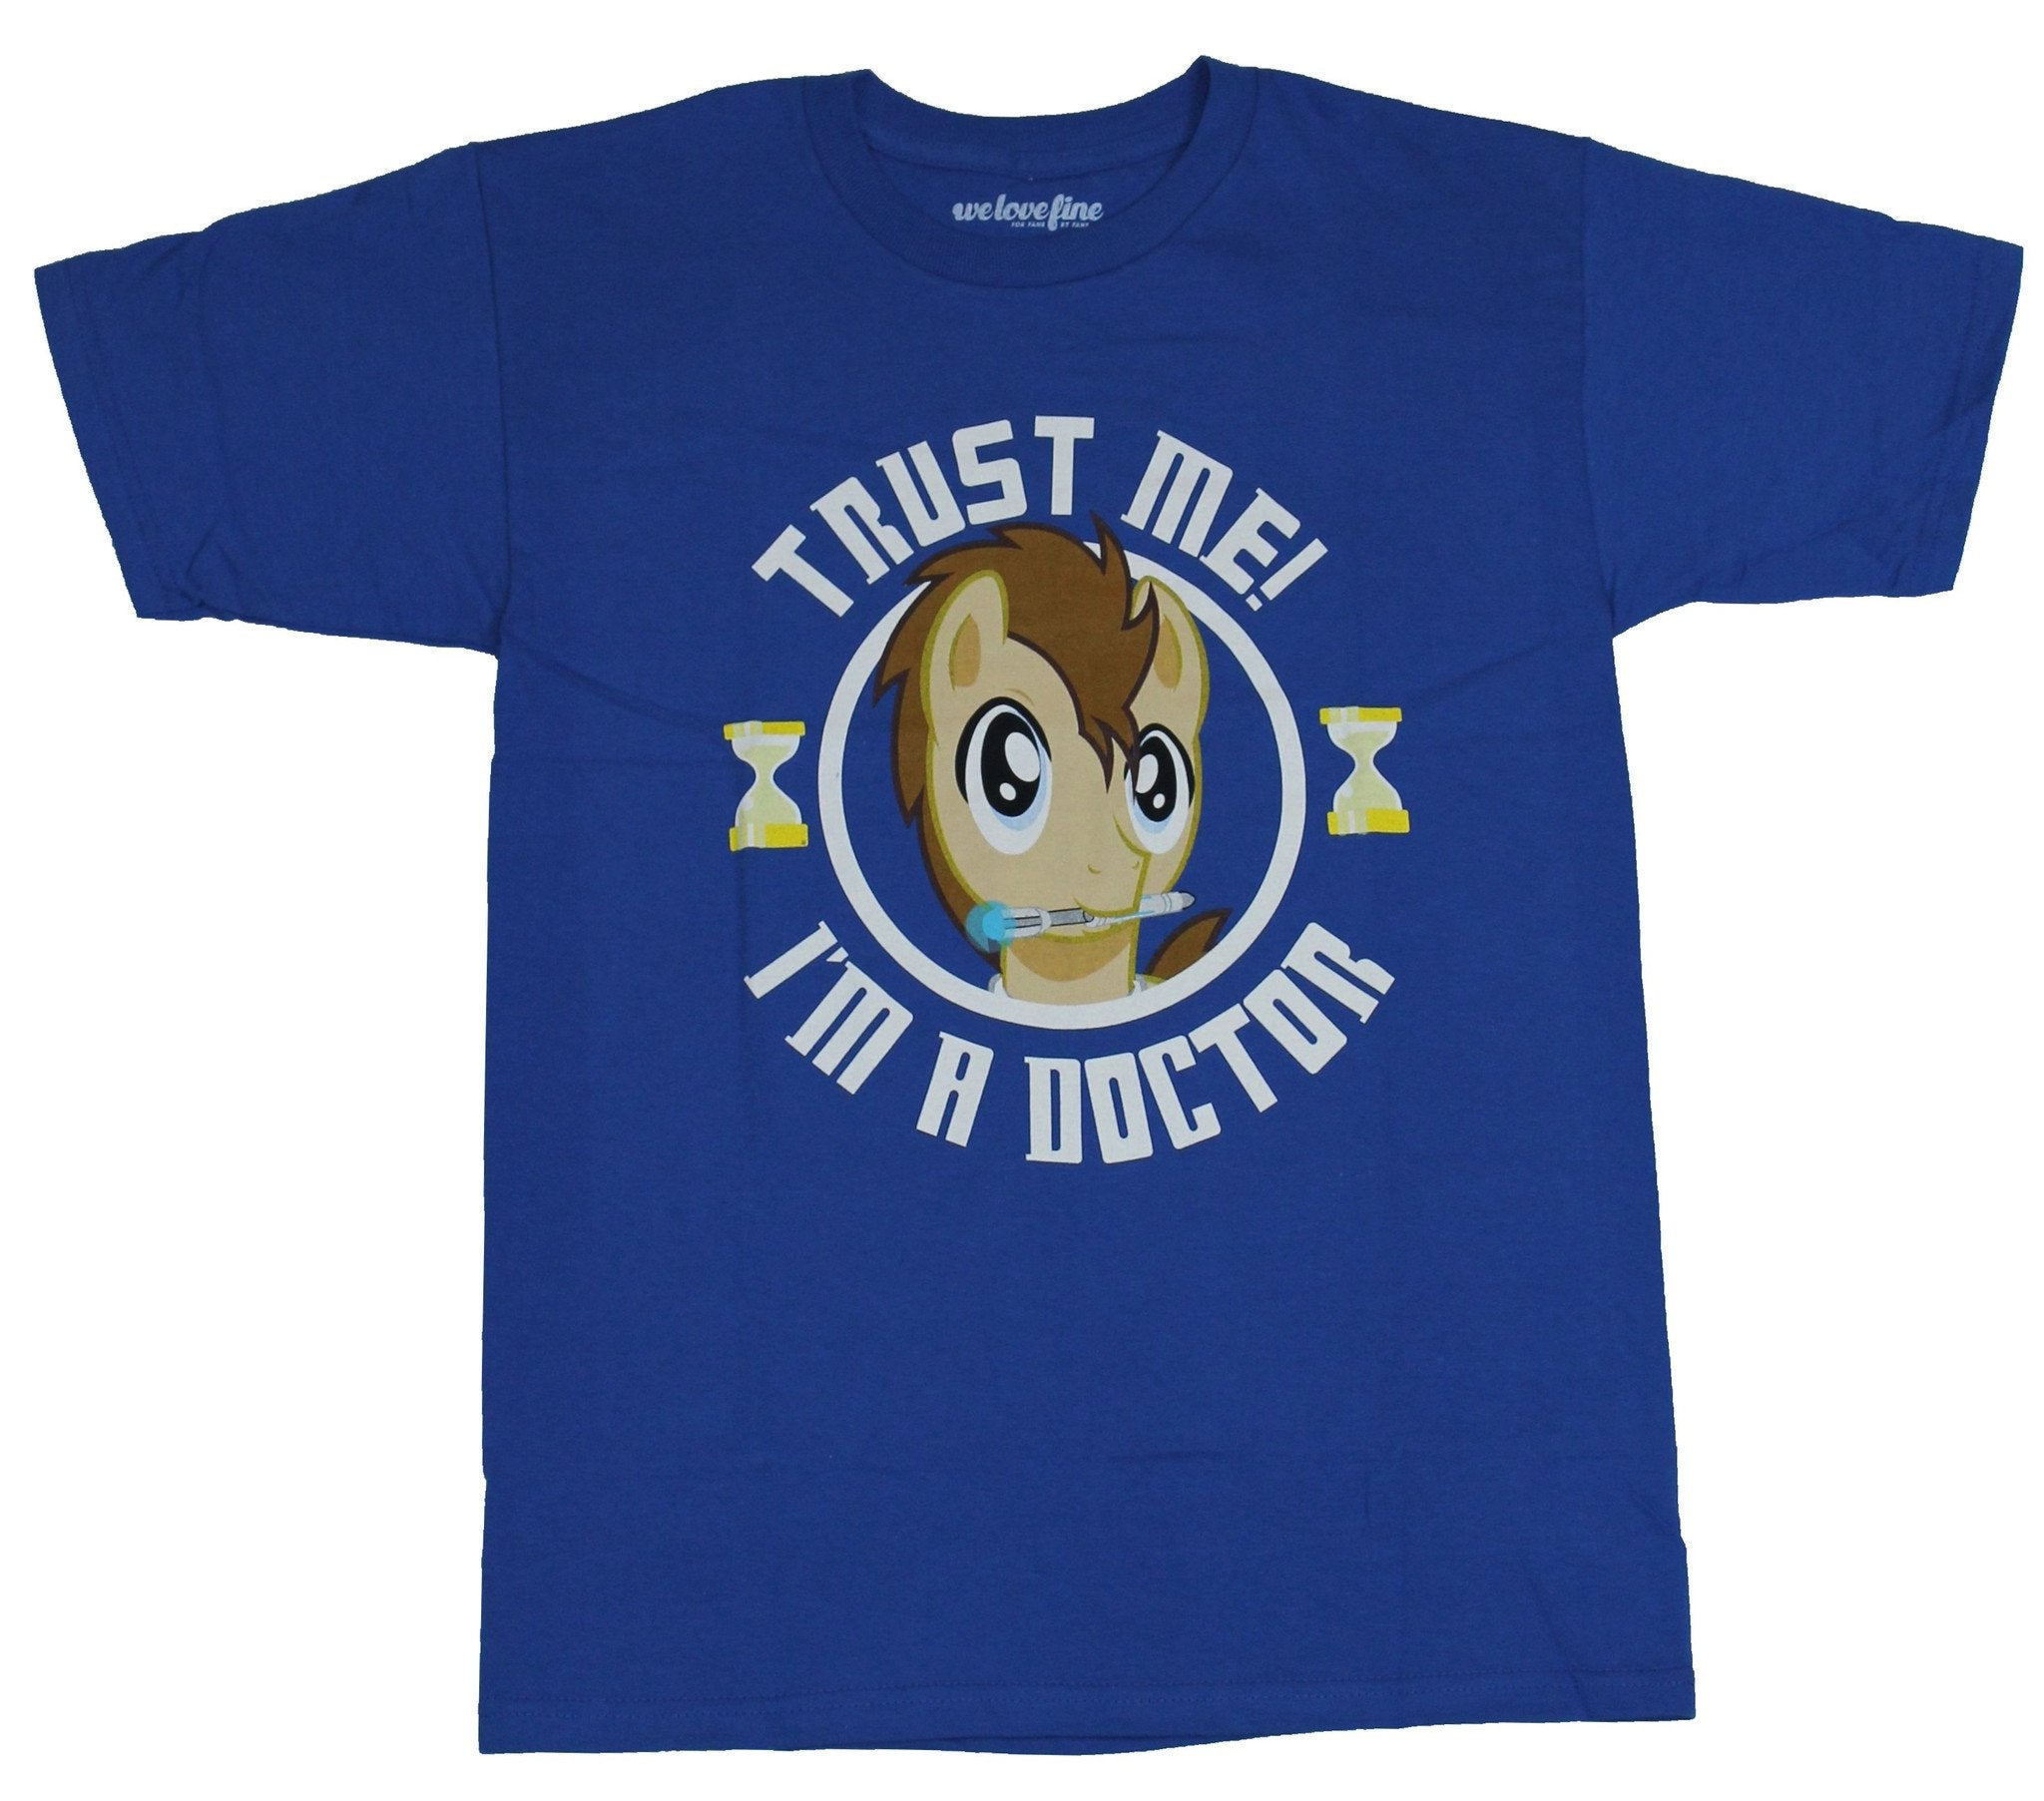 My Little Pony Mens T-Shirt  - Trust Me I'm A Doctor Whooves Circle Image